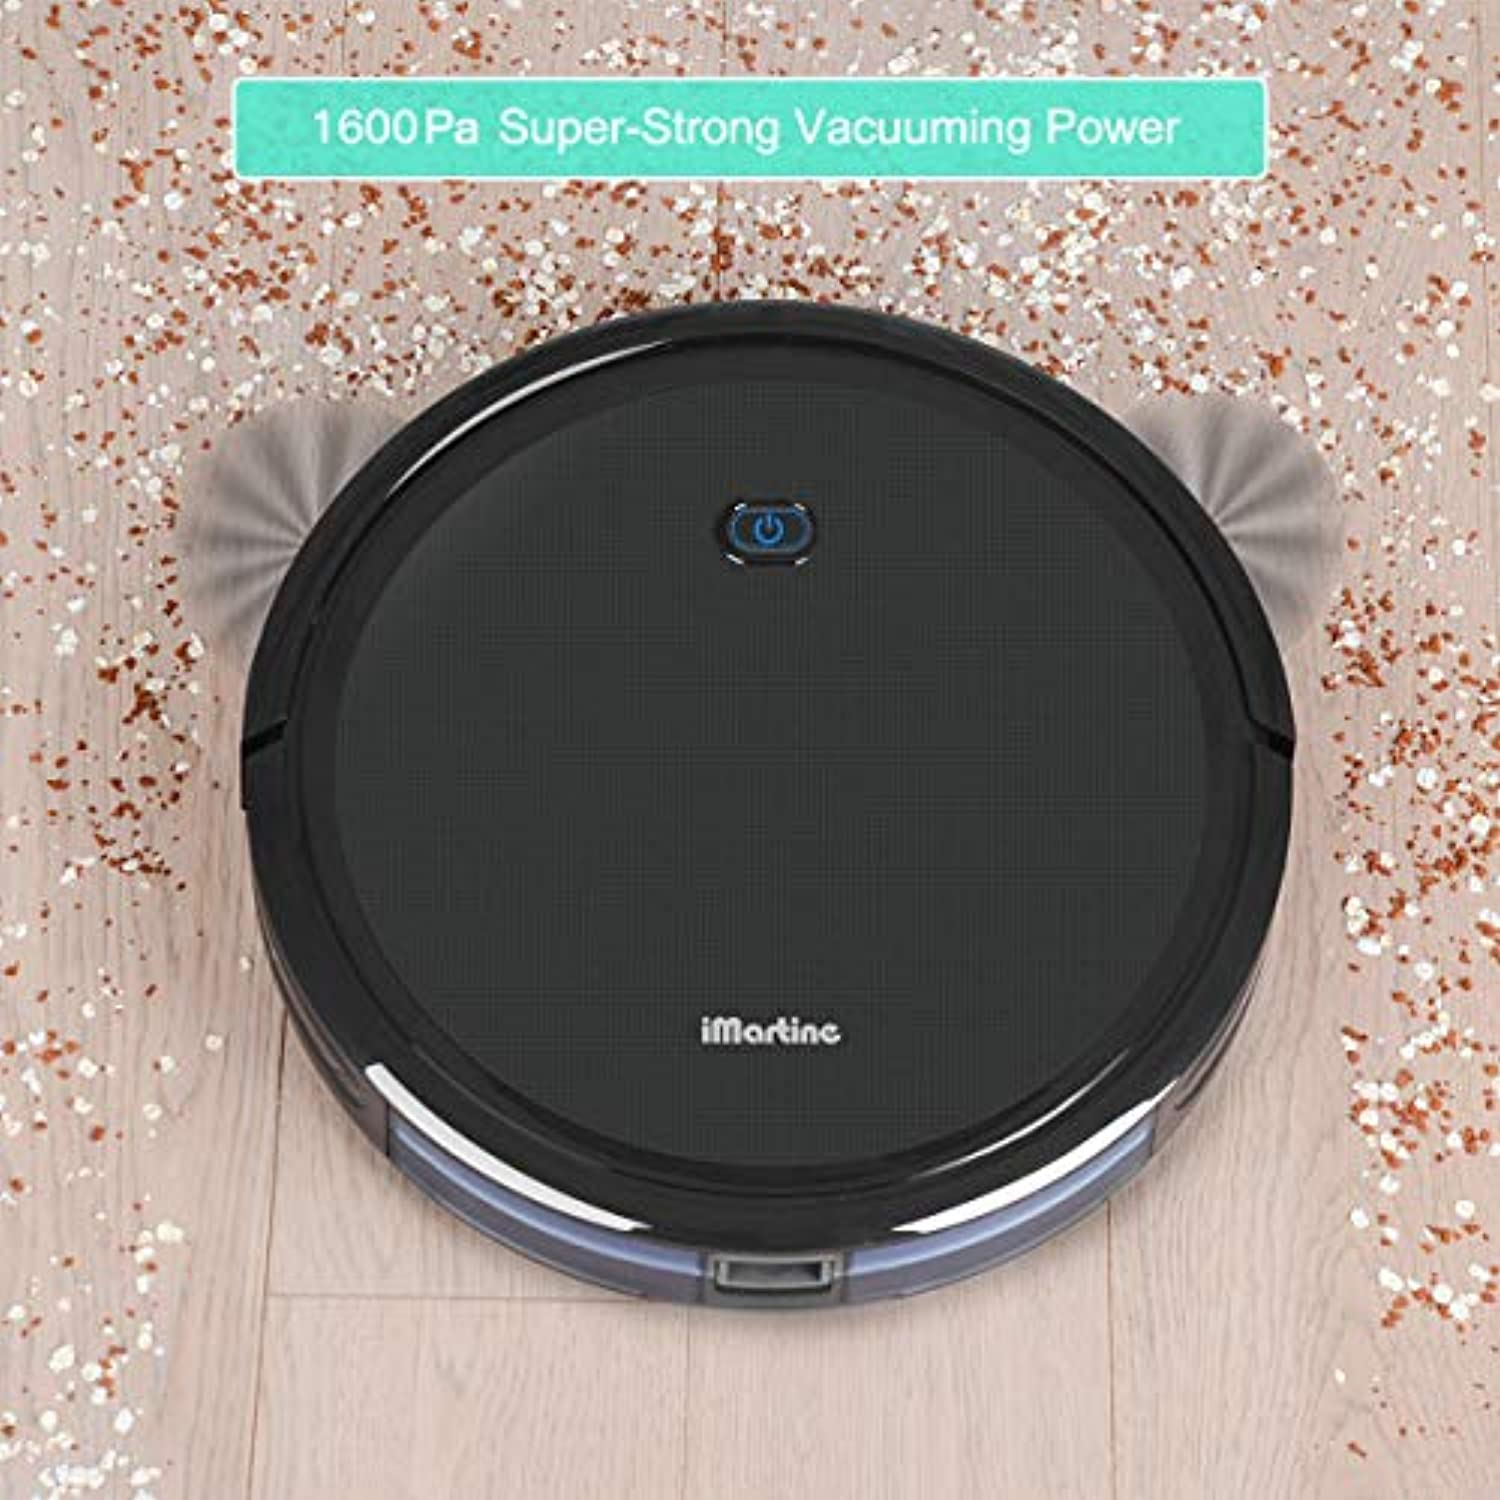 Classier: Buy iMartine Robot Vacuum Cleaner, iMartine 1600Pa Strong Suction Robotic Vacuum Cleaner, Super-Thin Quiet, Up to 120mins Runtime Automatic Self-Charging Robot Vacuum for Pet Hair Hard Floor to Medium-Pile